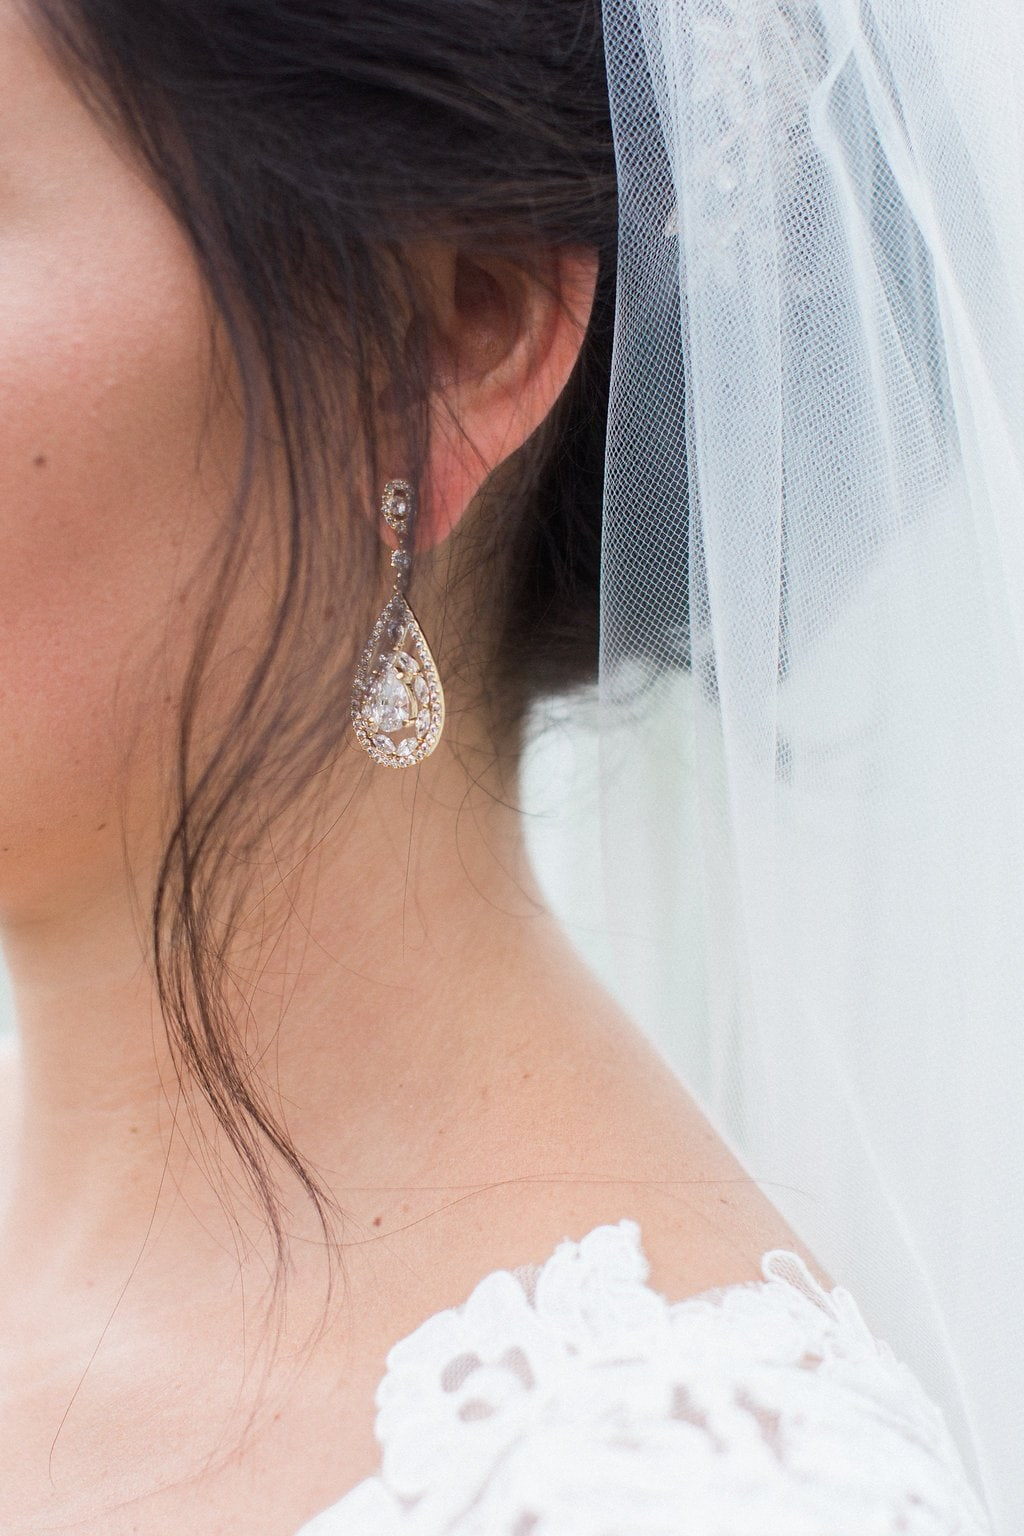 Close up of bride's earring